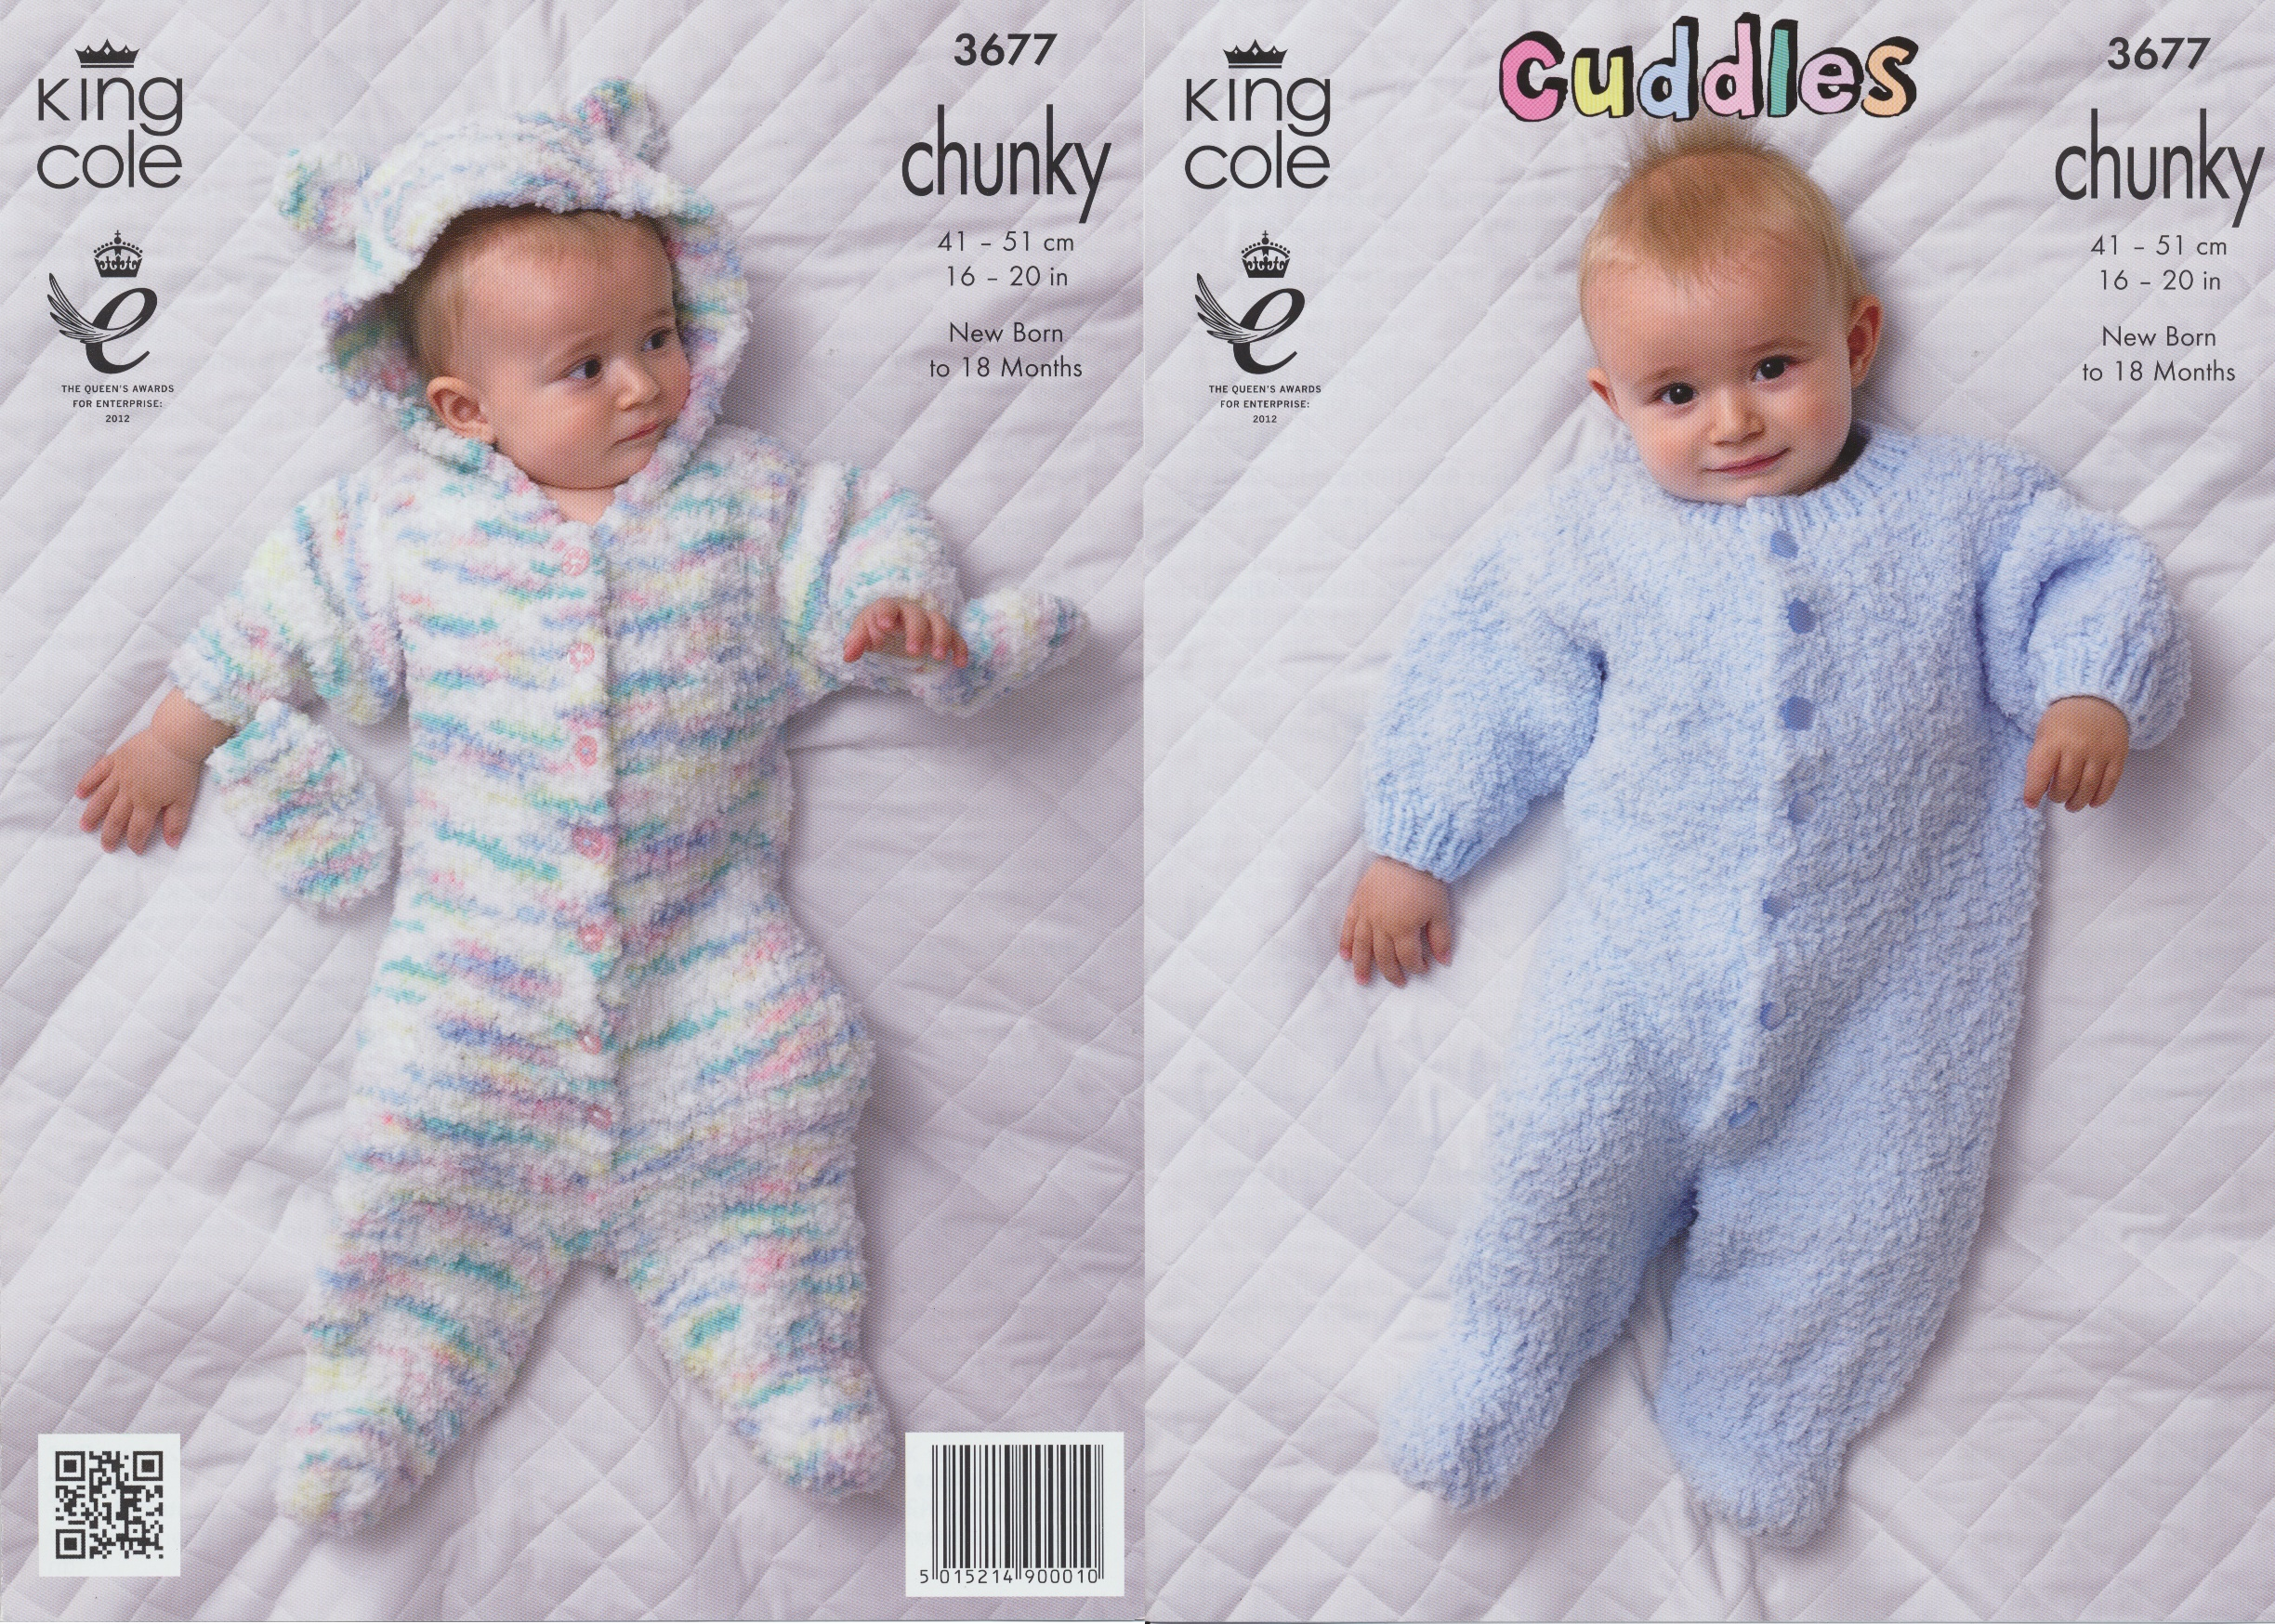 Cuddles Chunky Knitting Pattern King Cole Baby Hooded ...